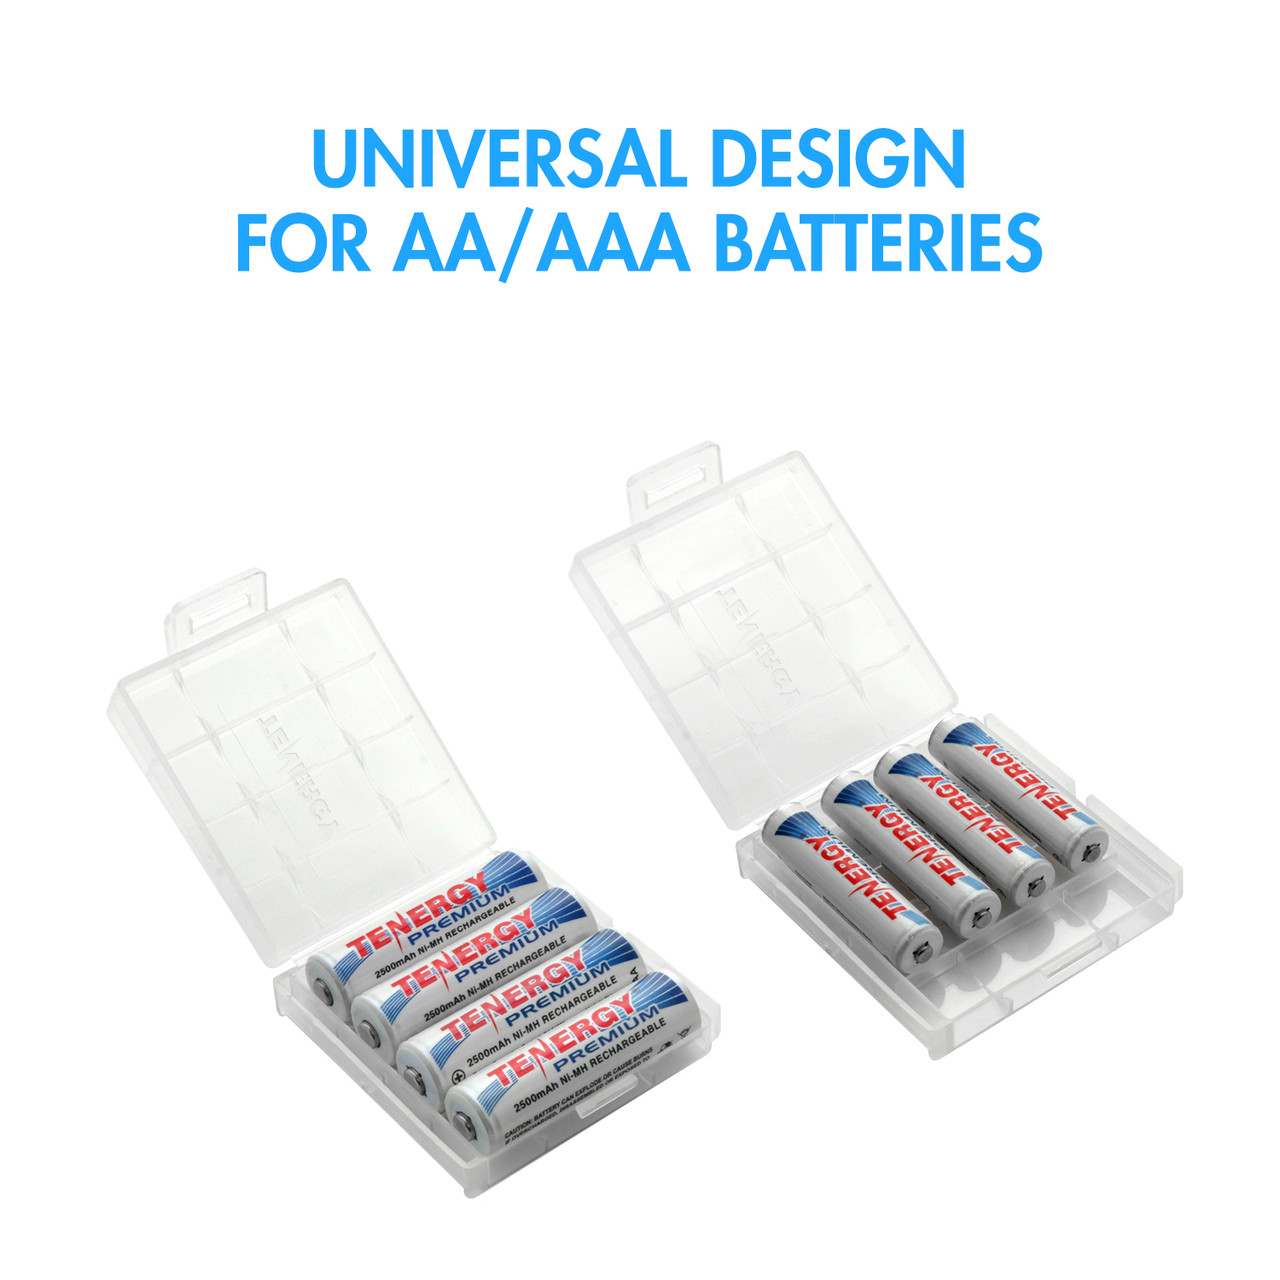 5 AA & 5 AAA Tenergy Plastic Cases - 4 Battery Slots (Batteries sold separately)